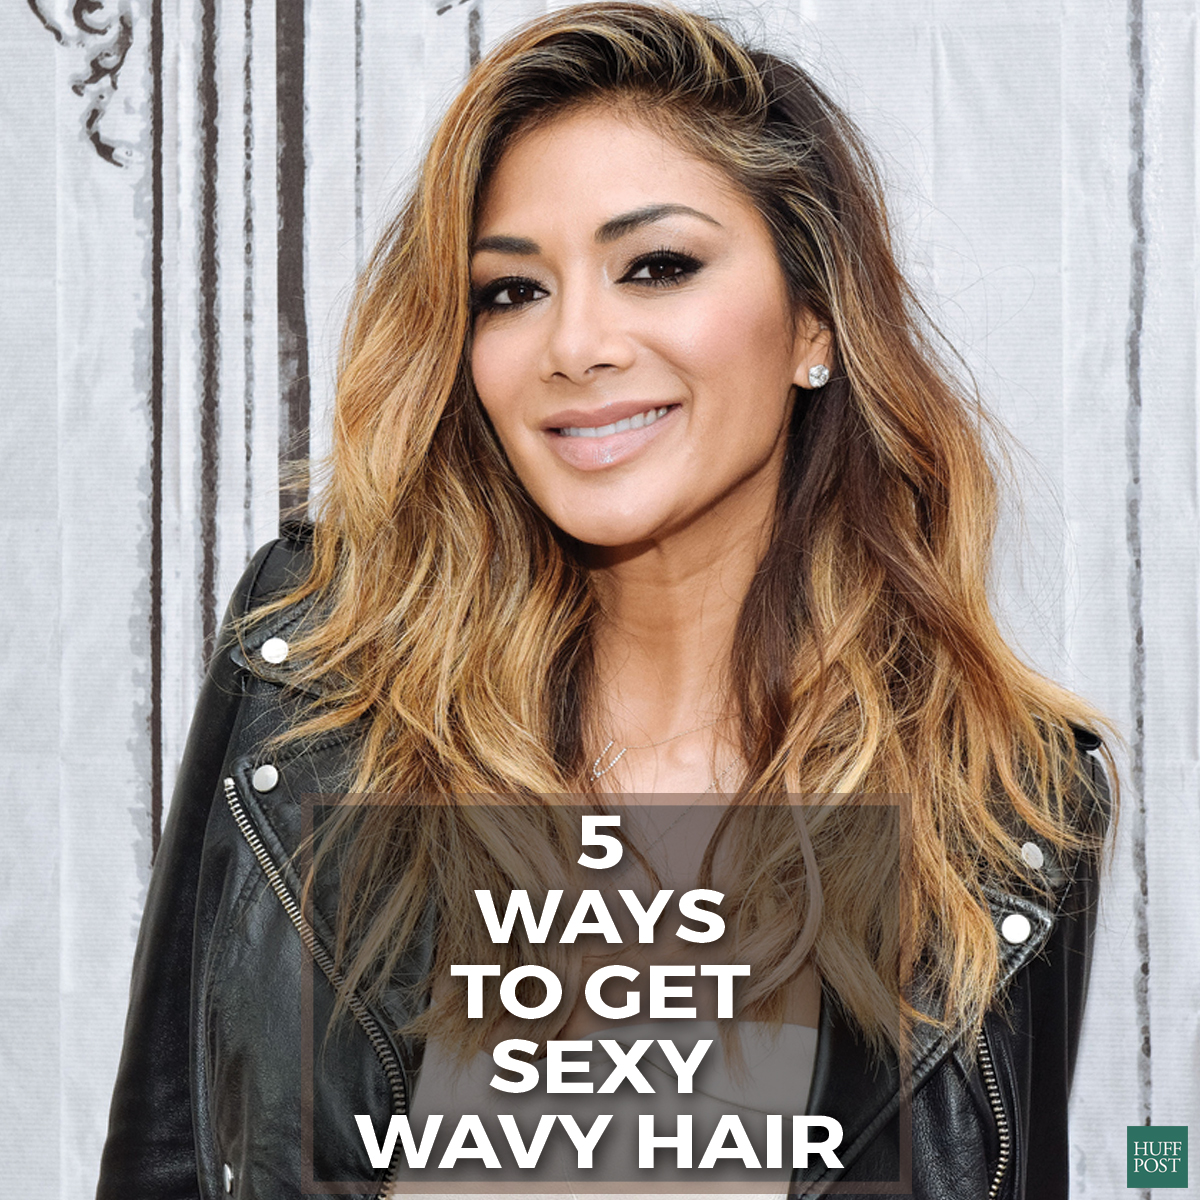 Tousled Updos Sexy Wavy Hair And More Celebrity Looks We Loved - Wavy hair